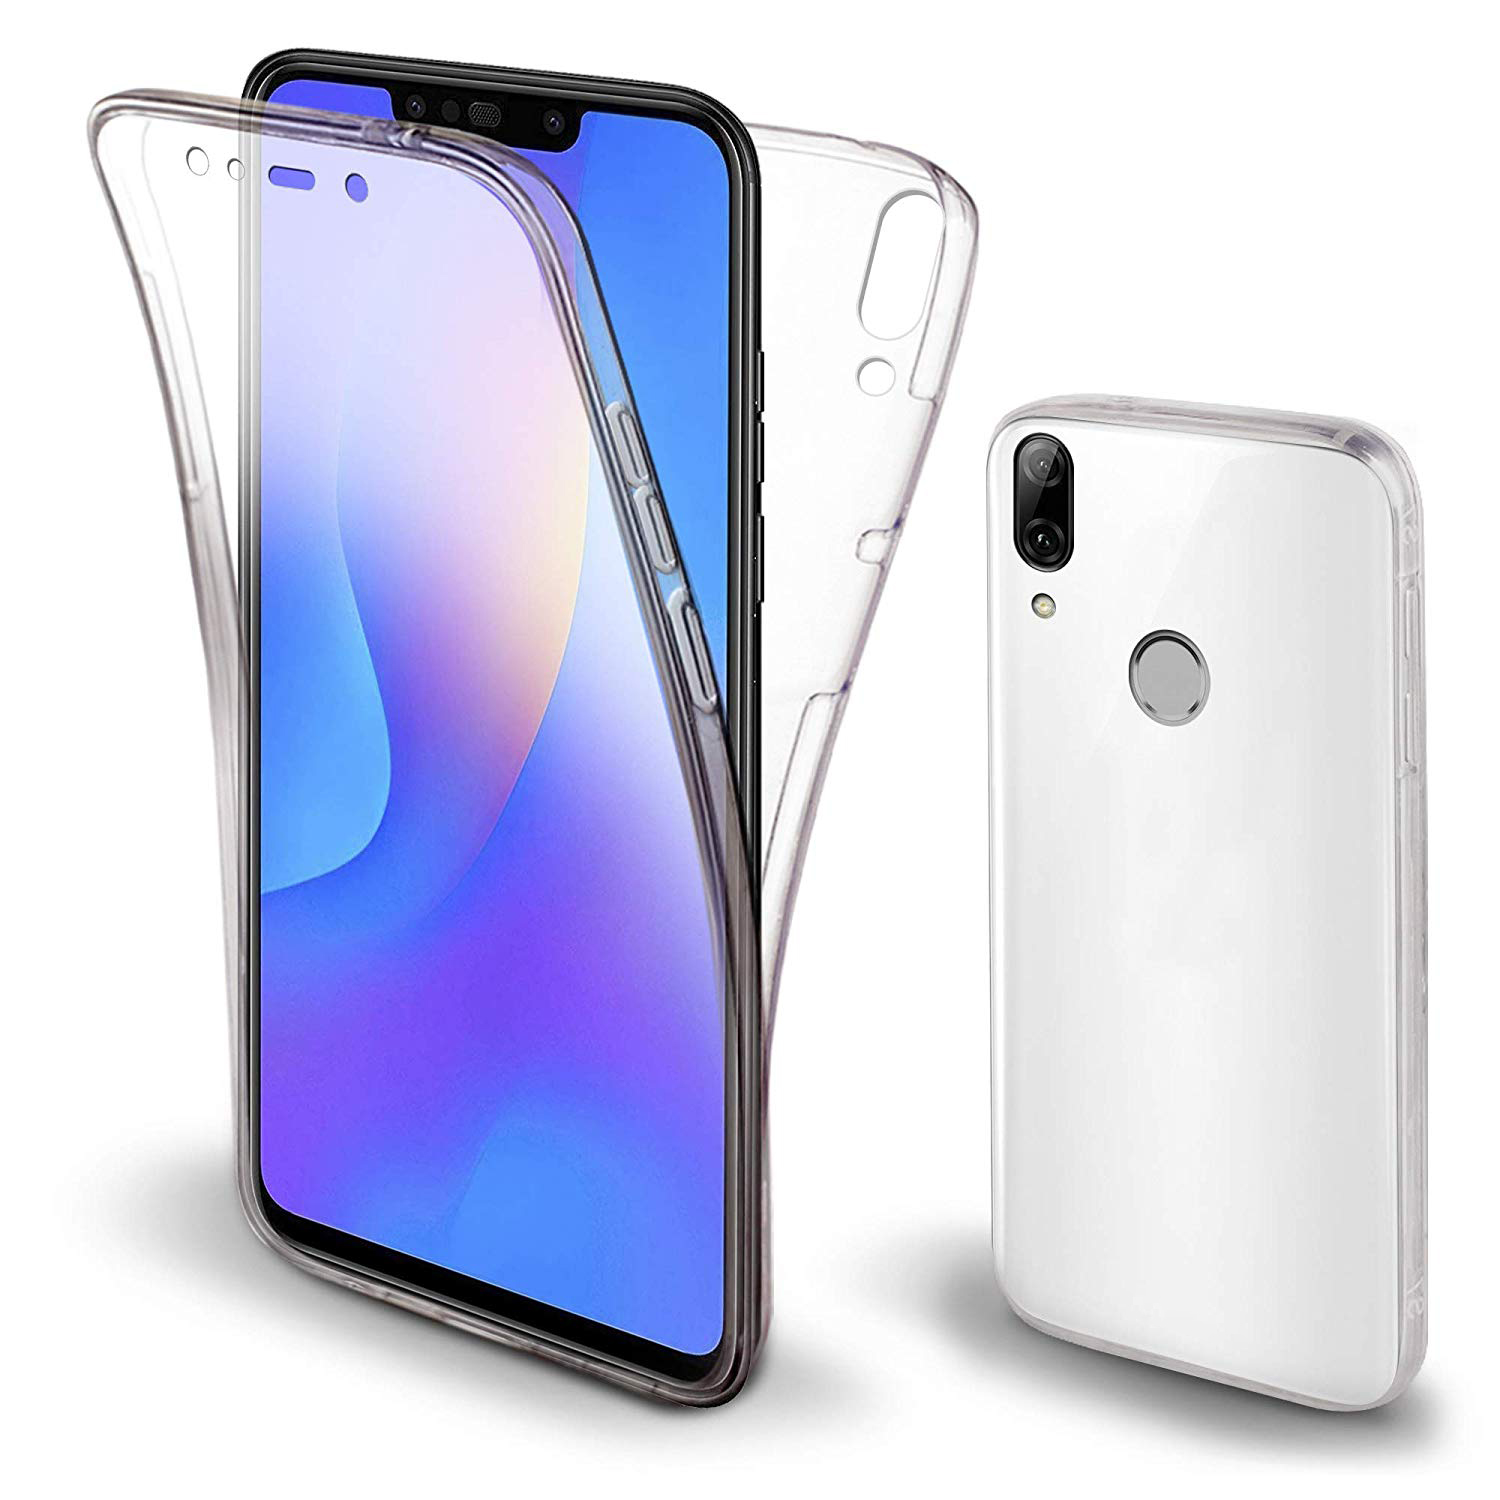 360 degree case For huawei Y6 Y7 Prime 2019 Pro 2019 transparent phone honor 8A silicone cover 2 in 1 back soft TPU front case in Fitted Cases from Cellphones Telecommunications